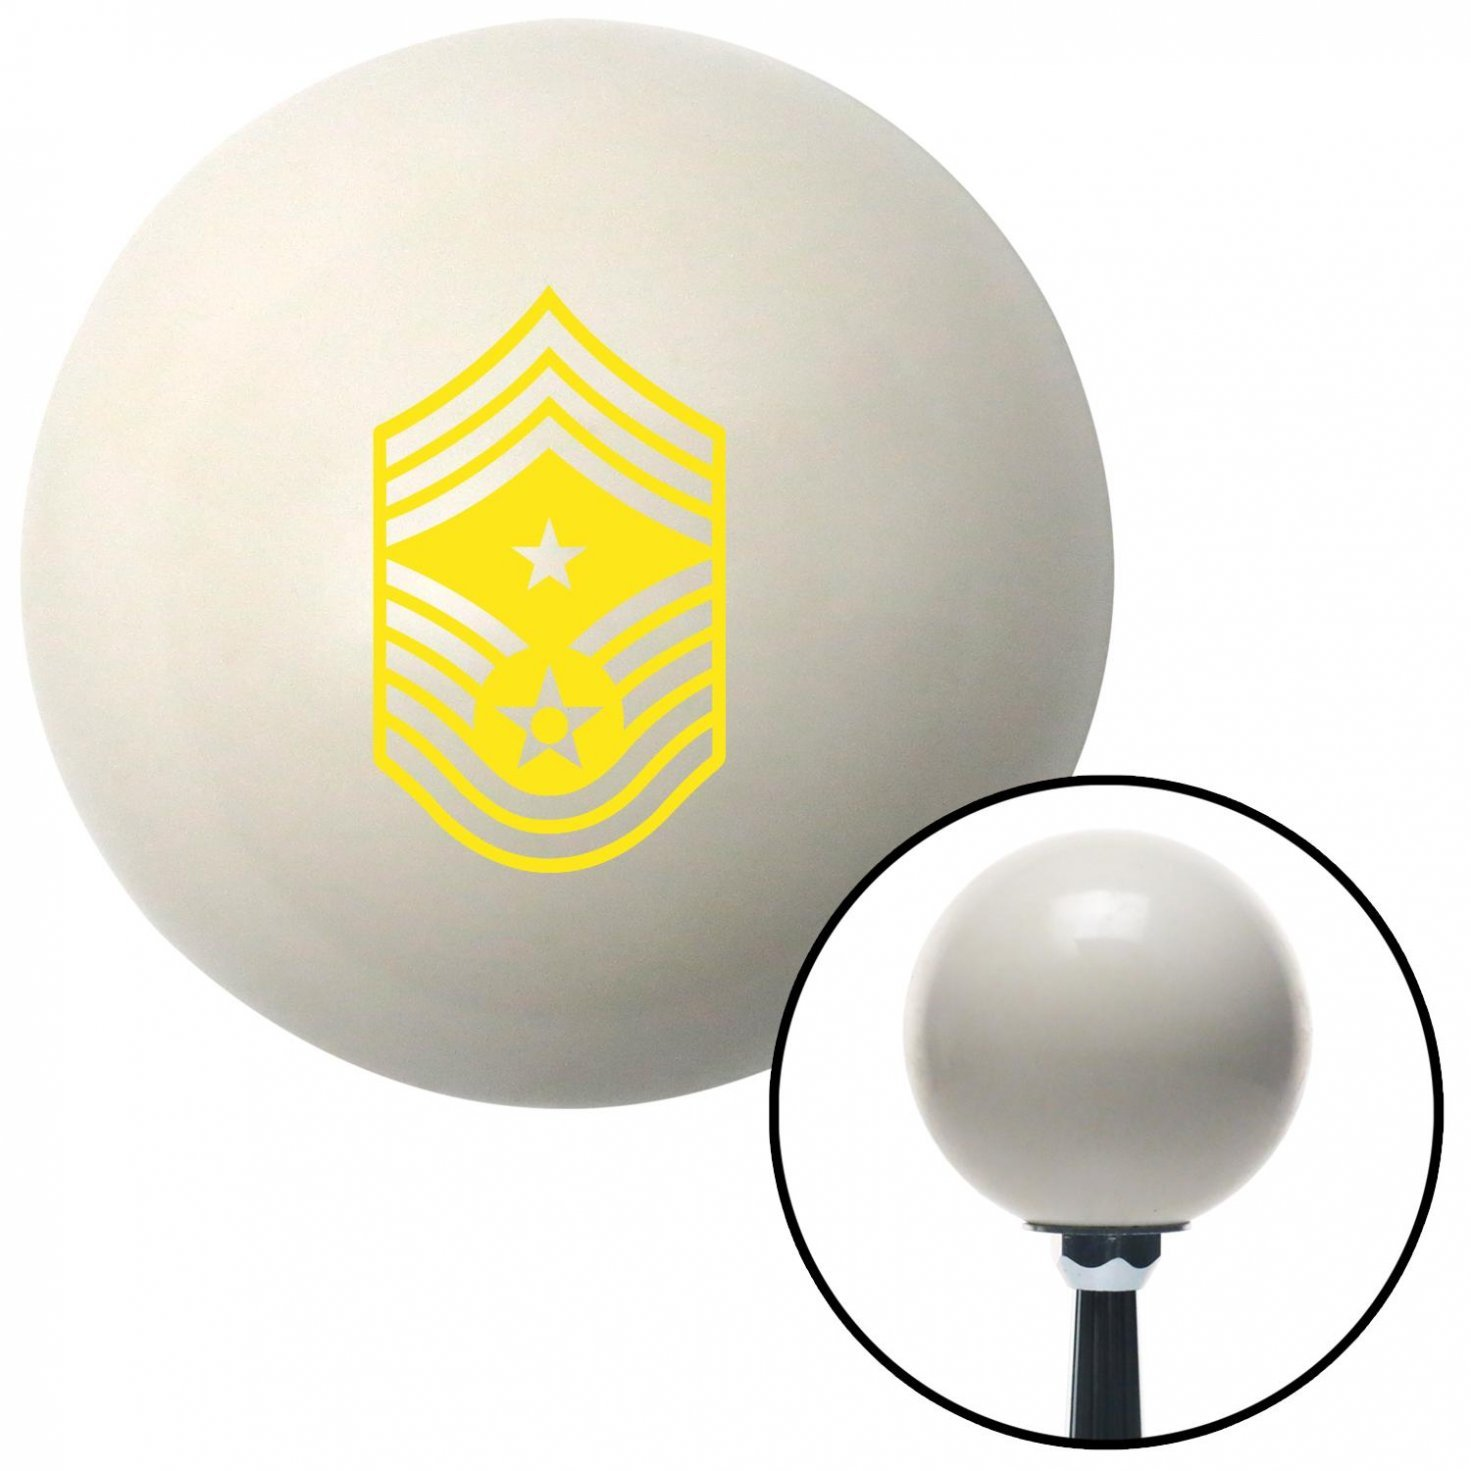 Yellow Command Chief Master Sergeant American Shifter 31920 Ivory Shift Knob with 16mm x 1.5 Insert